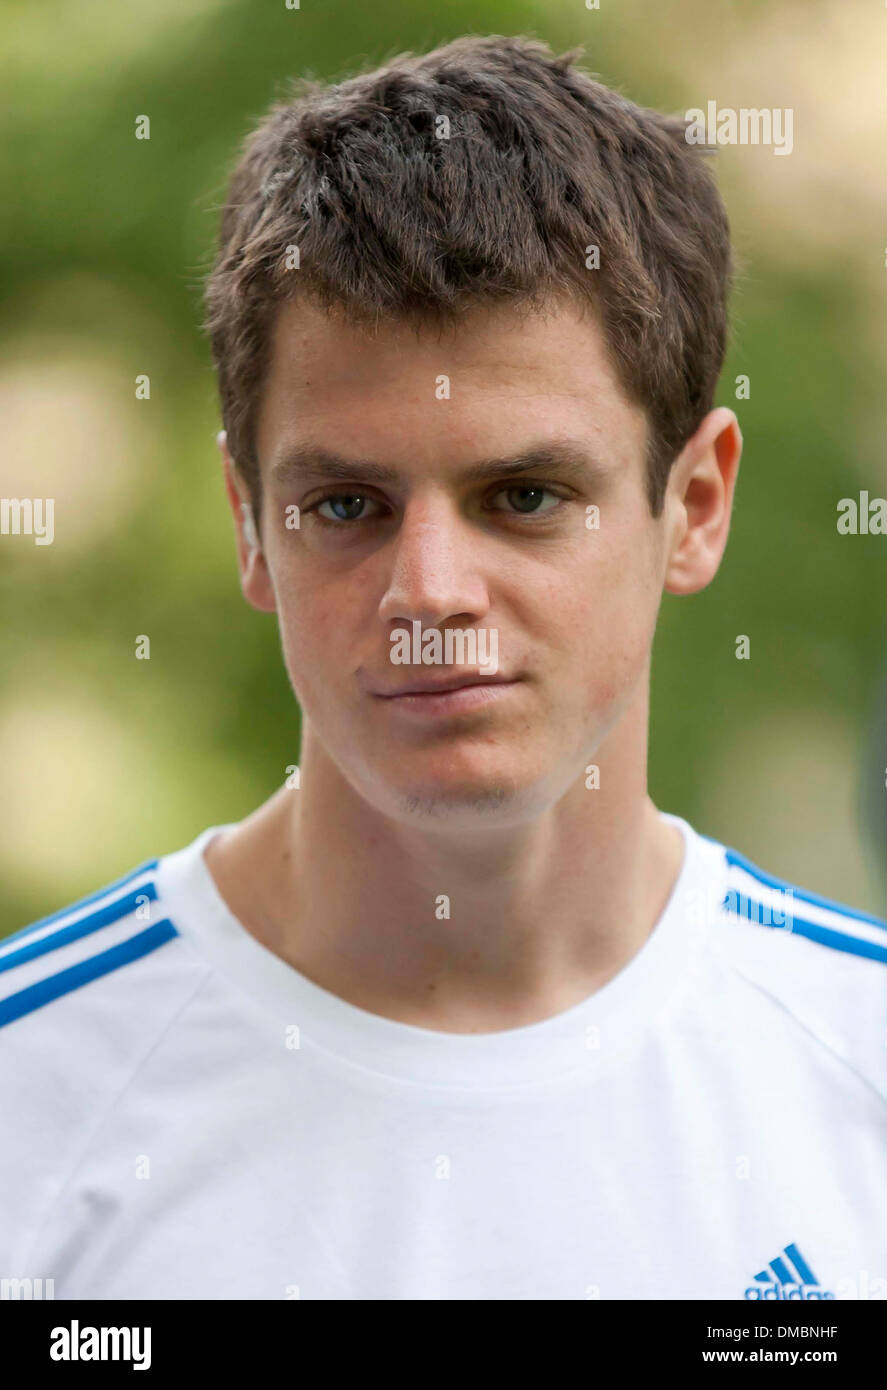 <b>Jonathan Brownlee</b> Leeds parkrun for 'Join In Local Sport' at Woodhouse Moor ... - jonathan-brownlee-leeds-parkrun-for-join-in-local-sport-at-woodhouse-DMBNHF